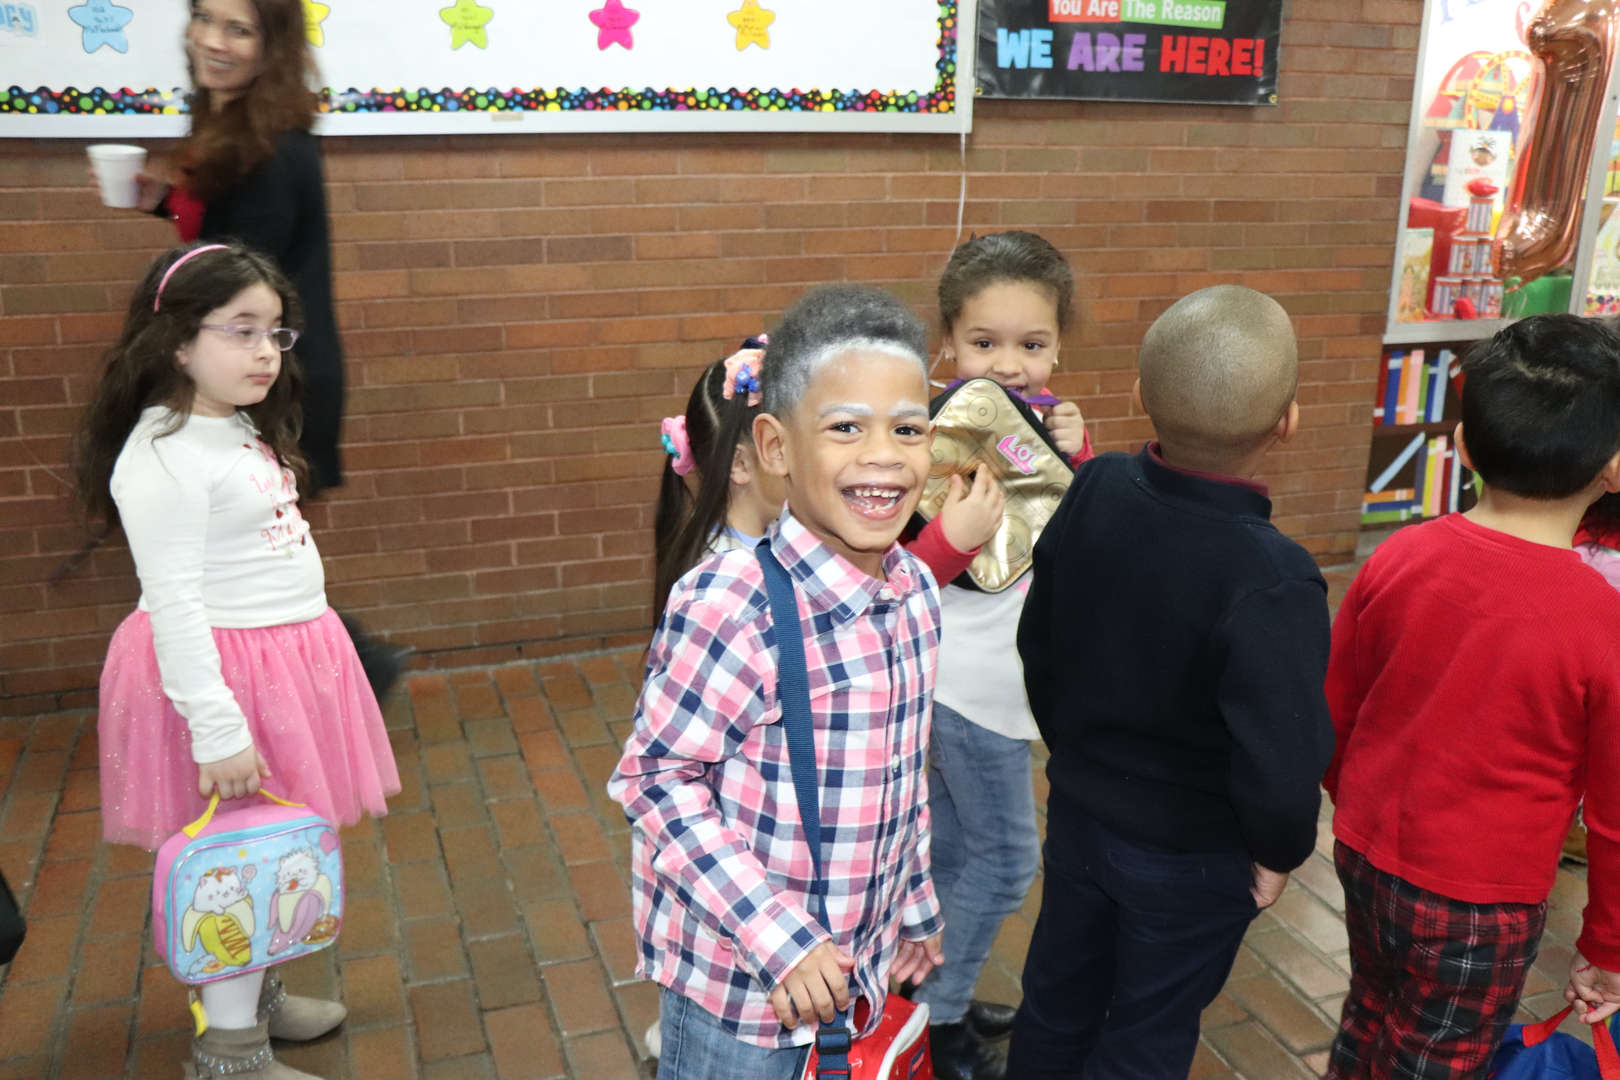 Students dressed like they are 100 to celebrate 100 days of school.